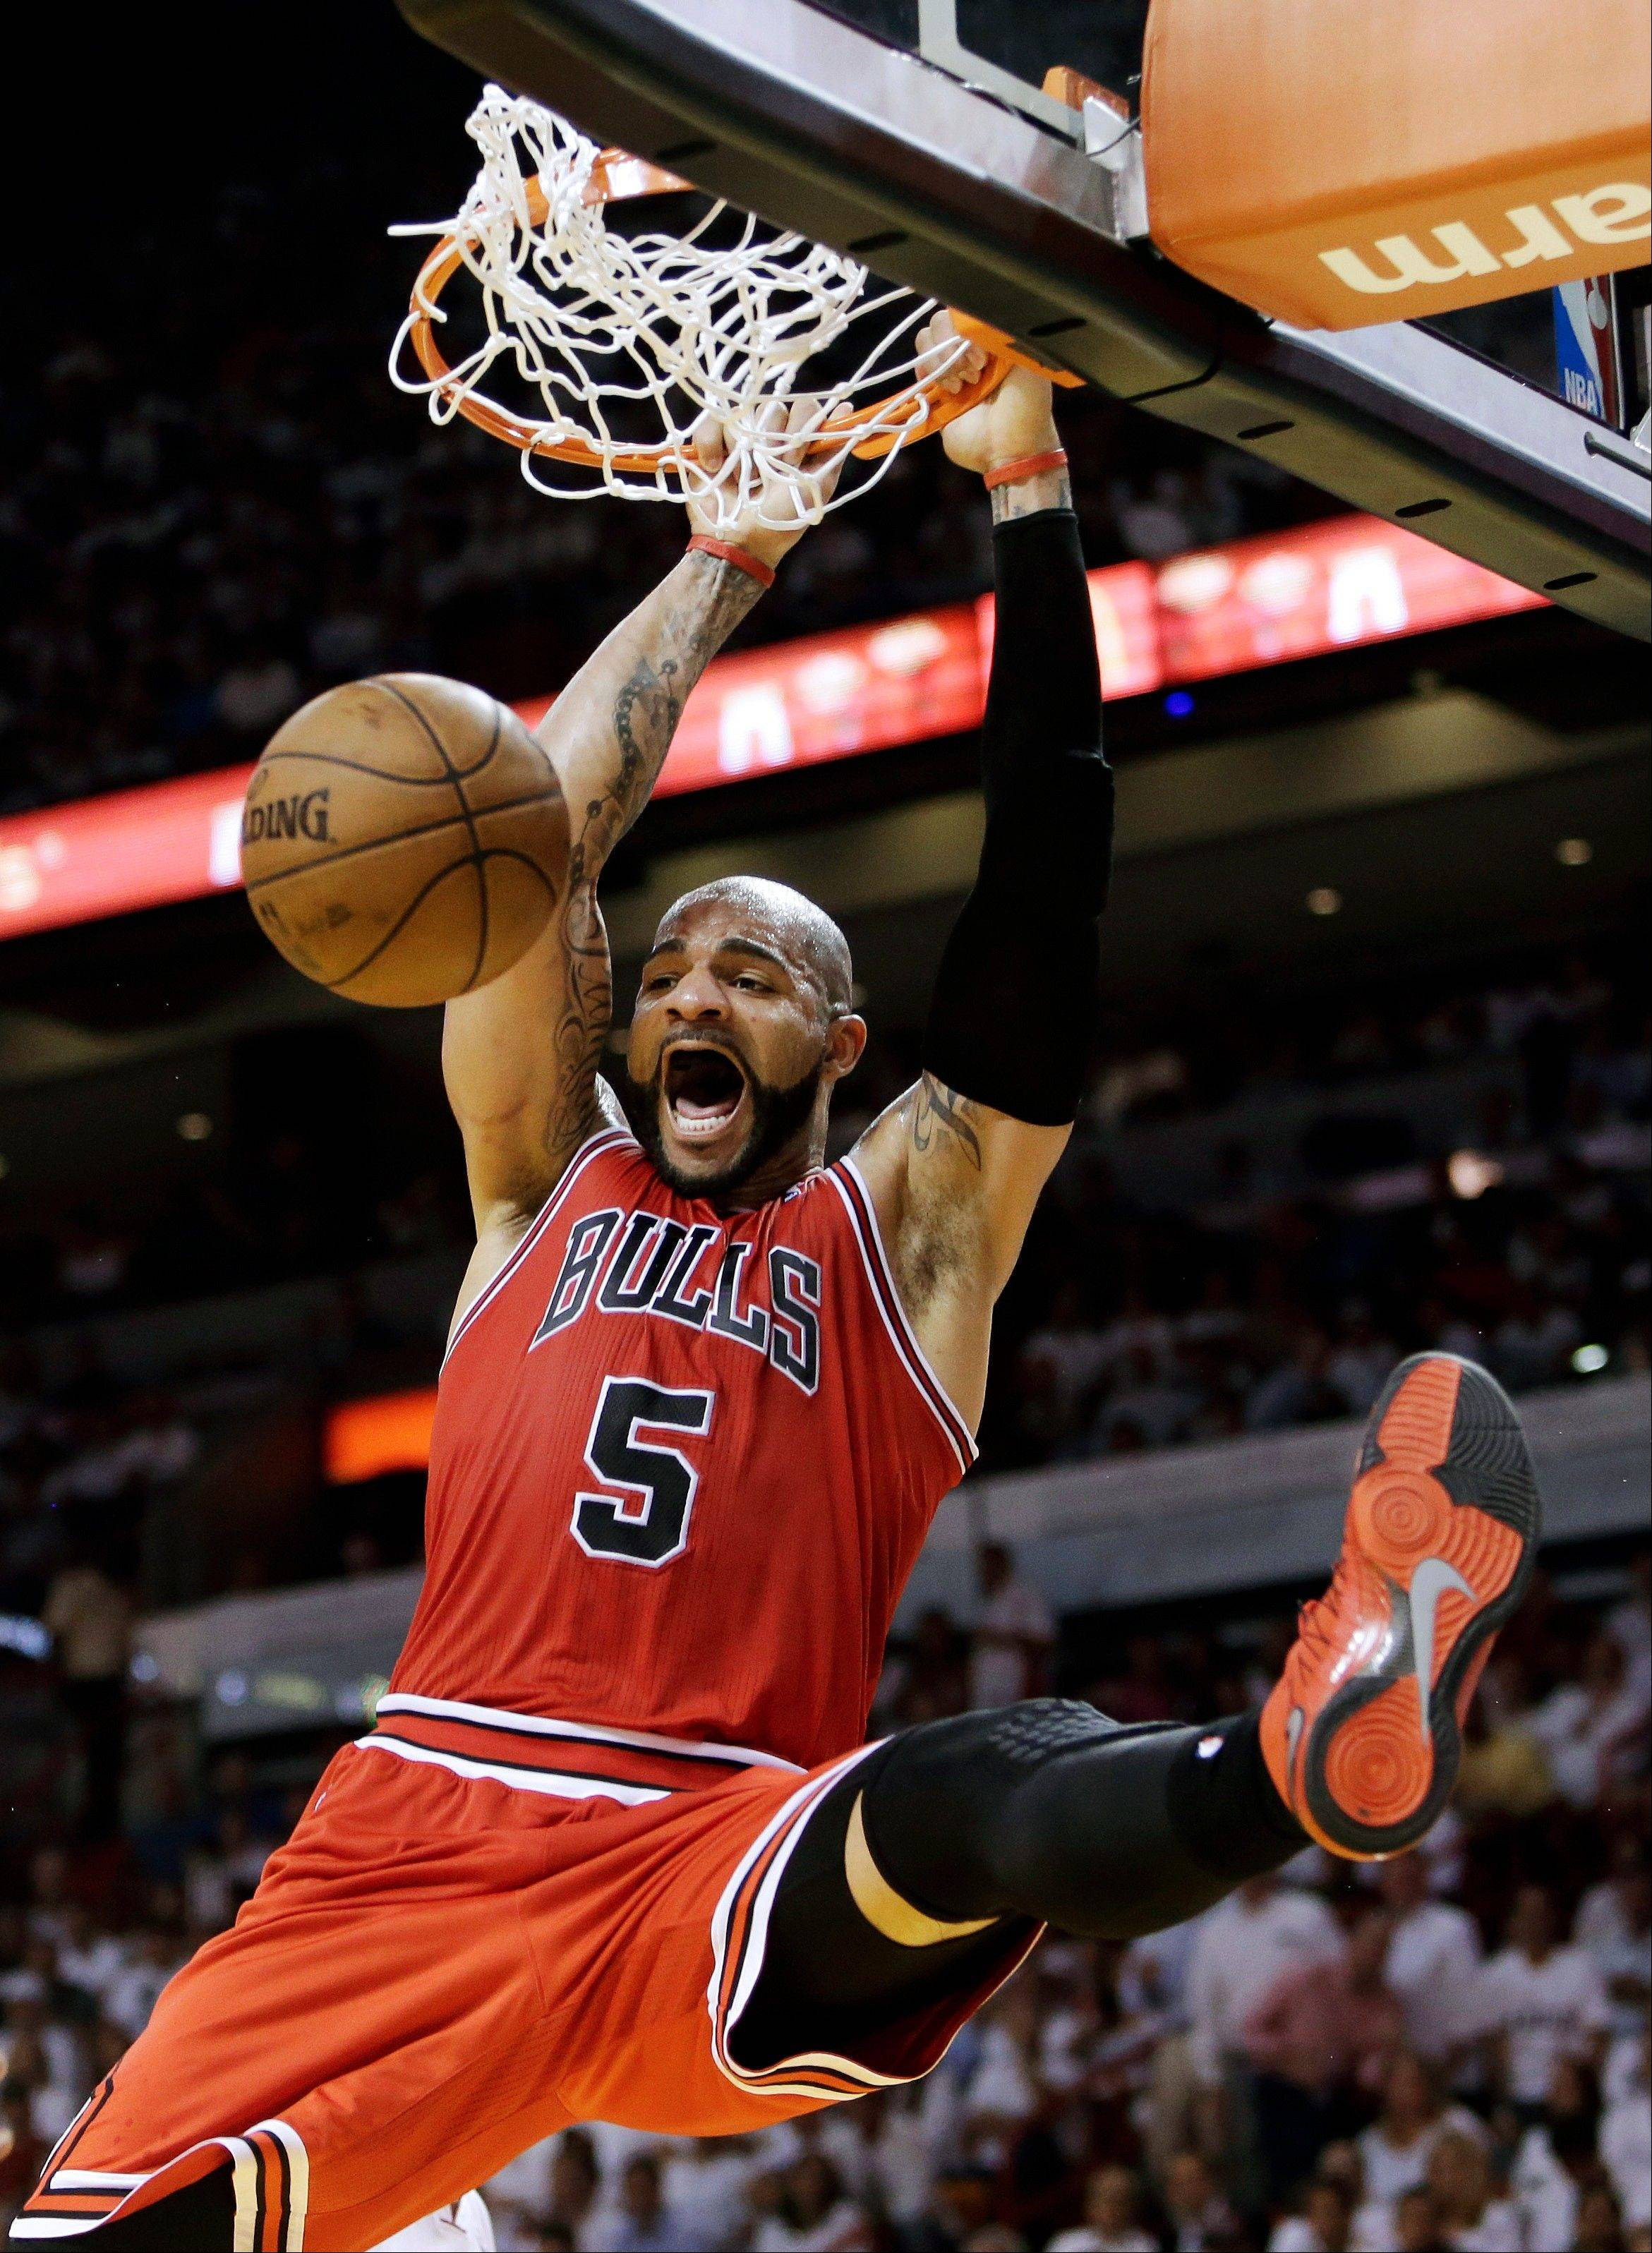 Chicago Bulls forward Carlos Boozer dunks during the second half of Game 1 of the NBA basketball playoff series in the Eastern Conference semifinals against the Miami Heat, Monday, May 6, 2013 in Miami.